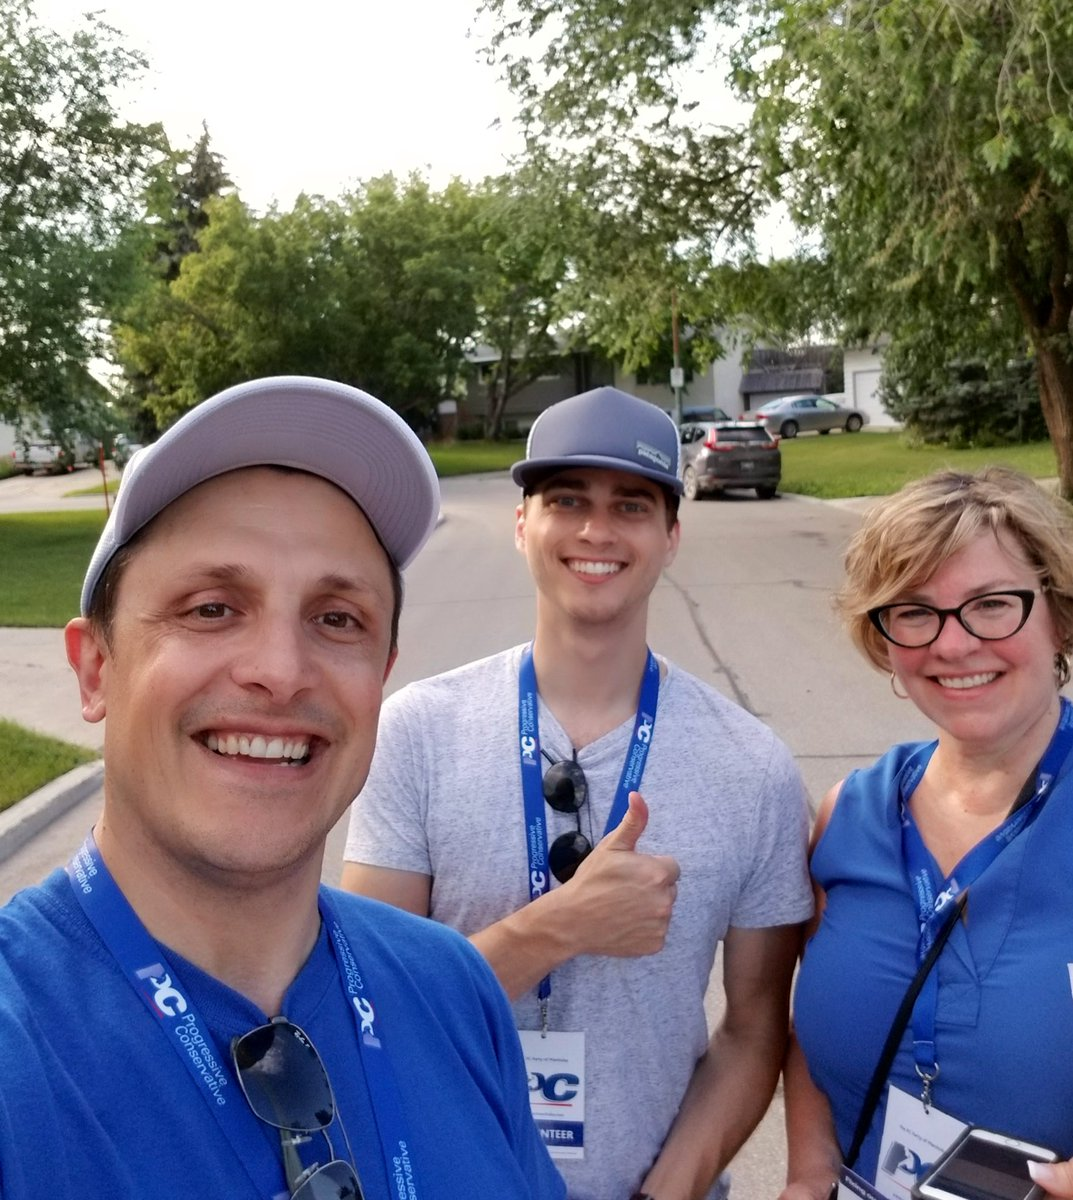 test Twitter Media - Having fun with my team after a great night at the doors in Fort Richmond.😄 There were two trophy winners tonight for most signs requested-way to go Team! #mbpoli https://t.co/UrJZLVOzRQ